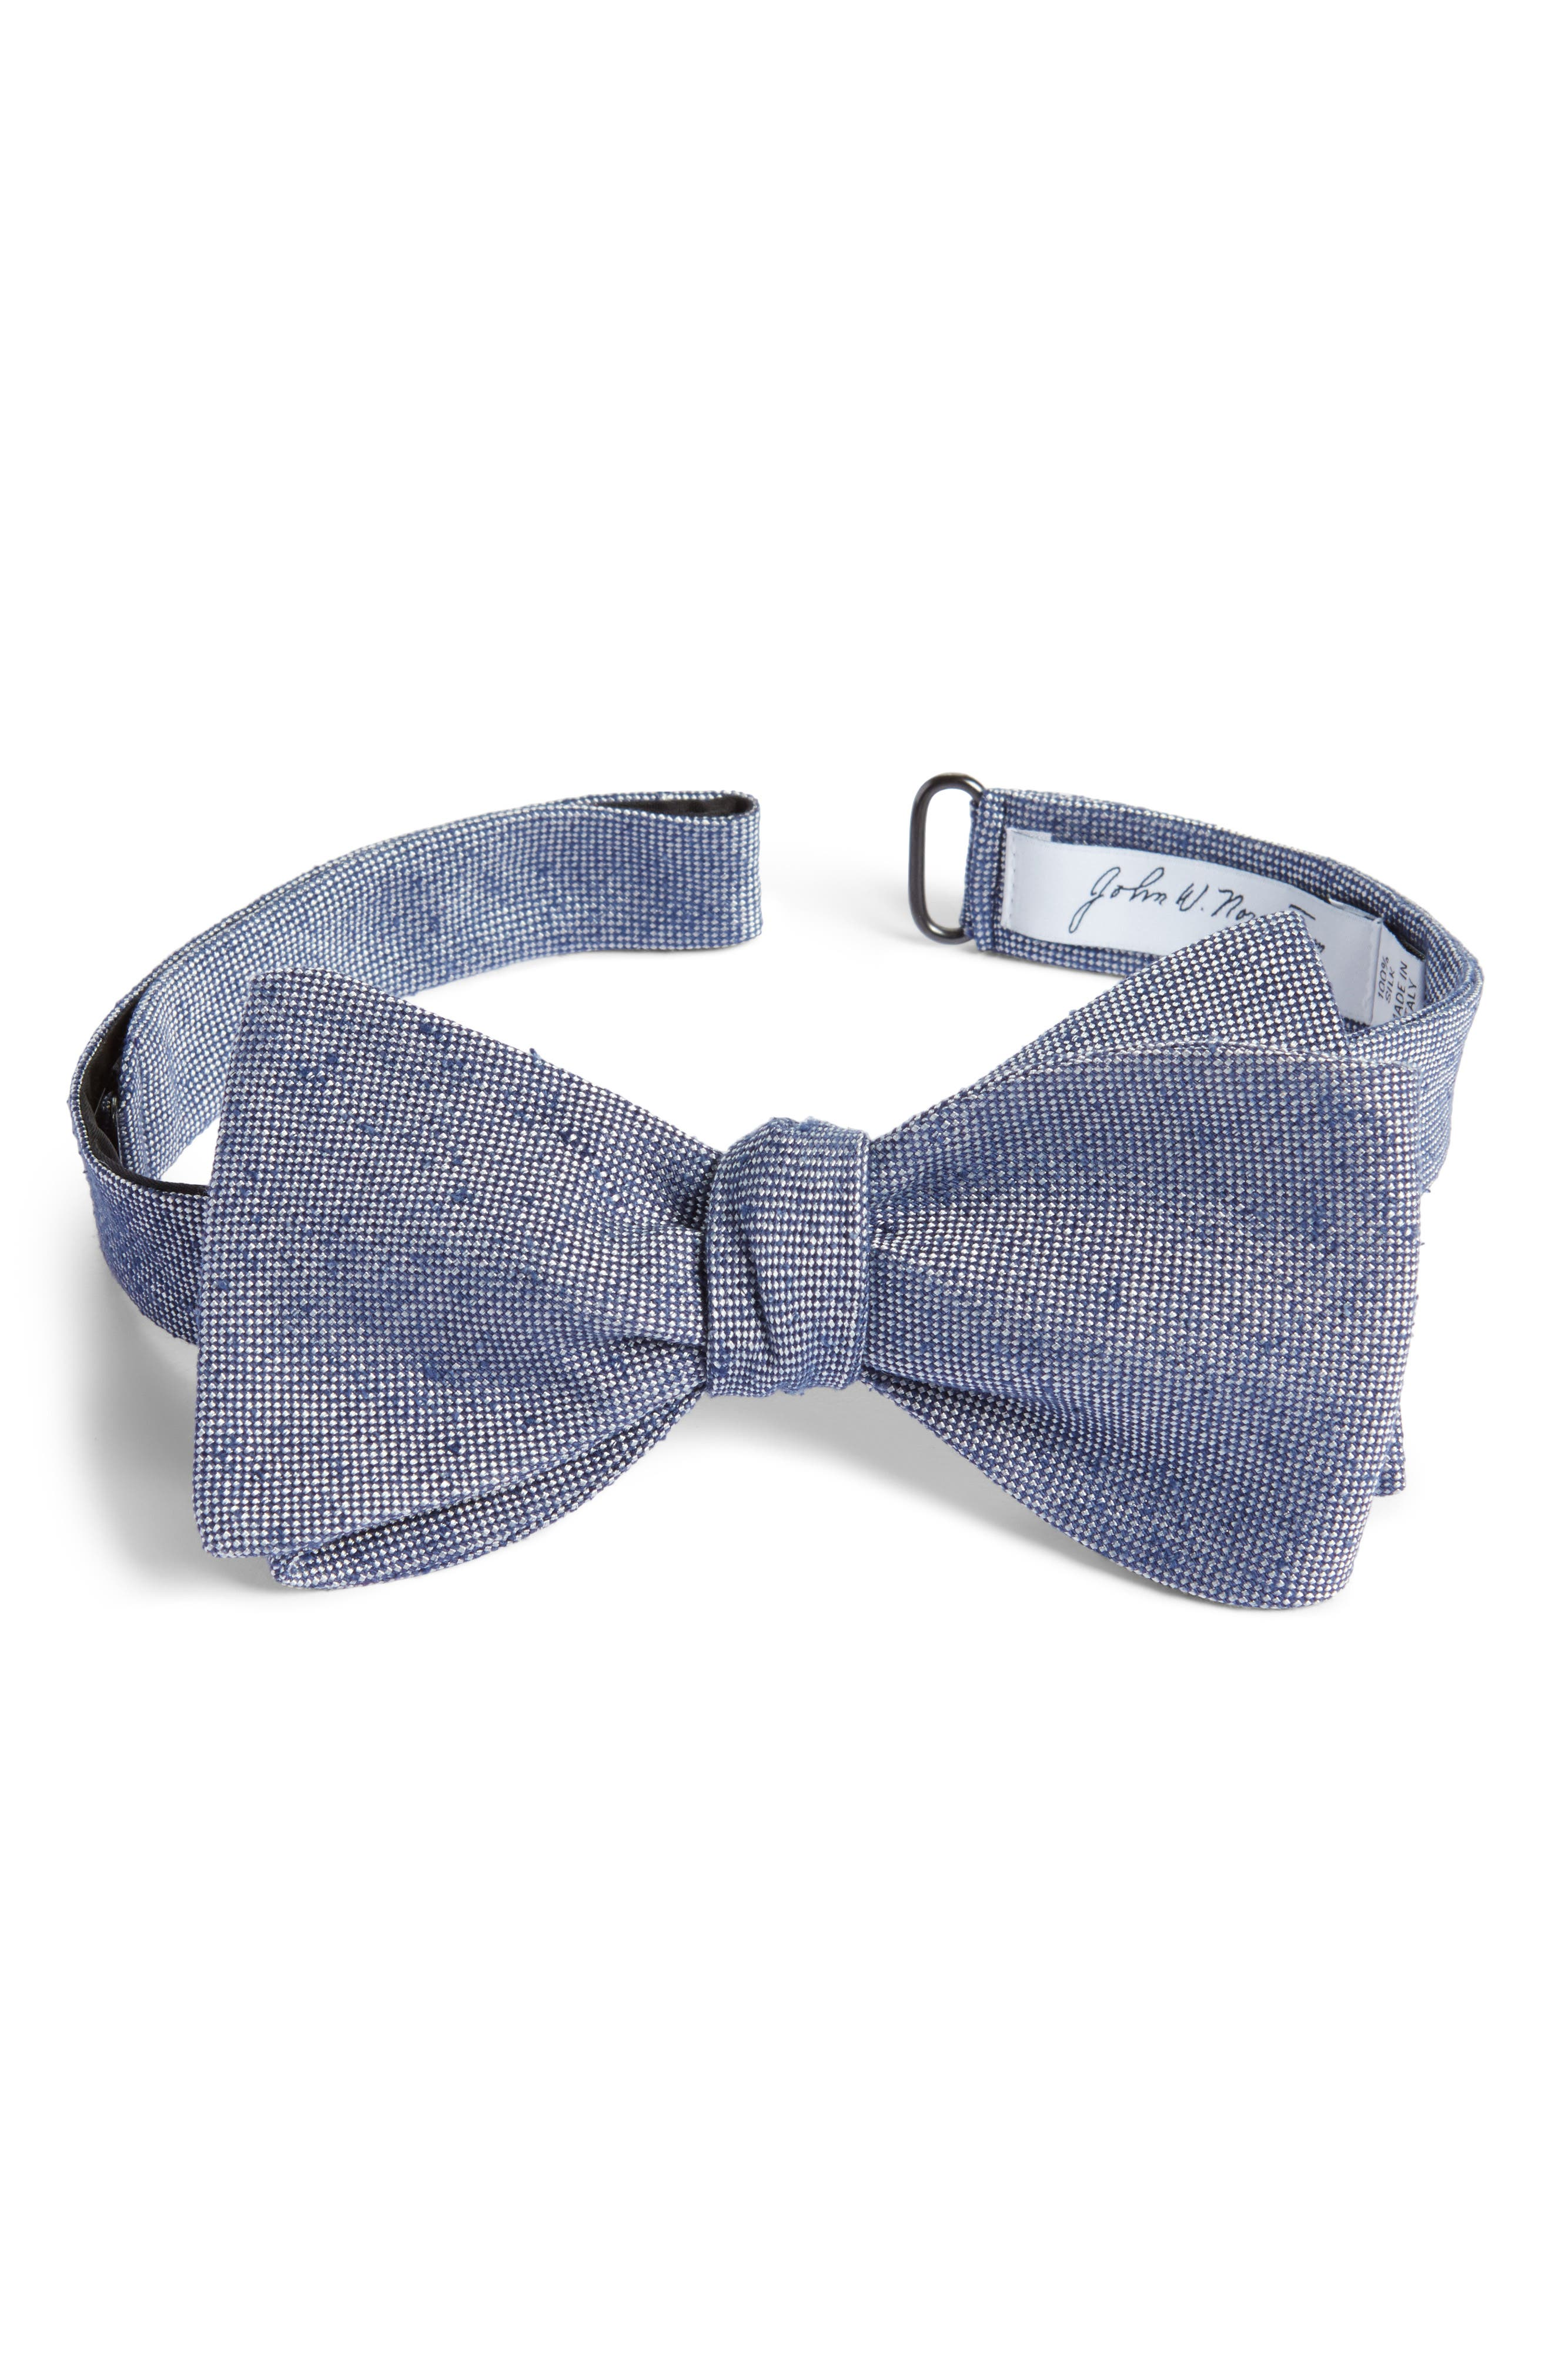 Solid Silk Bow Tie,                             Main thumbnail 1, color,                             410